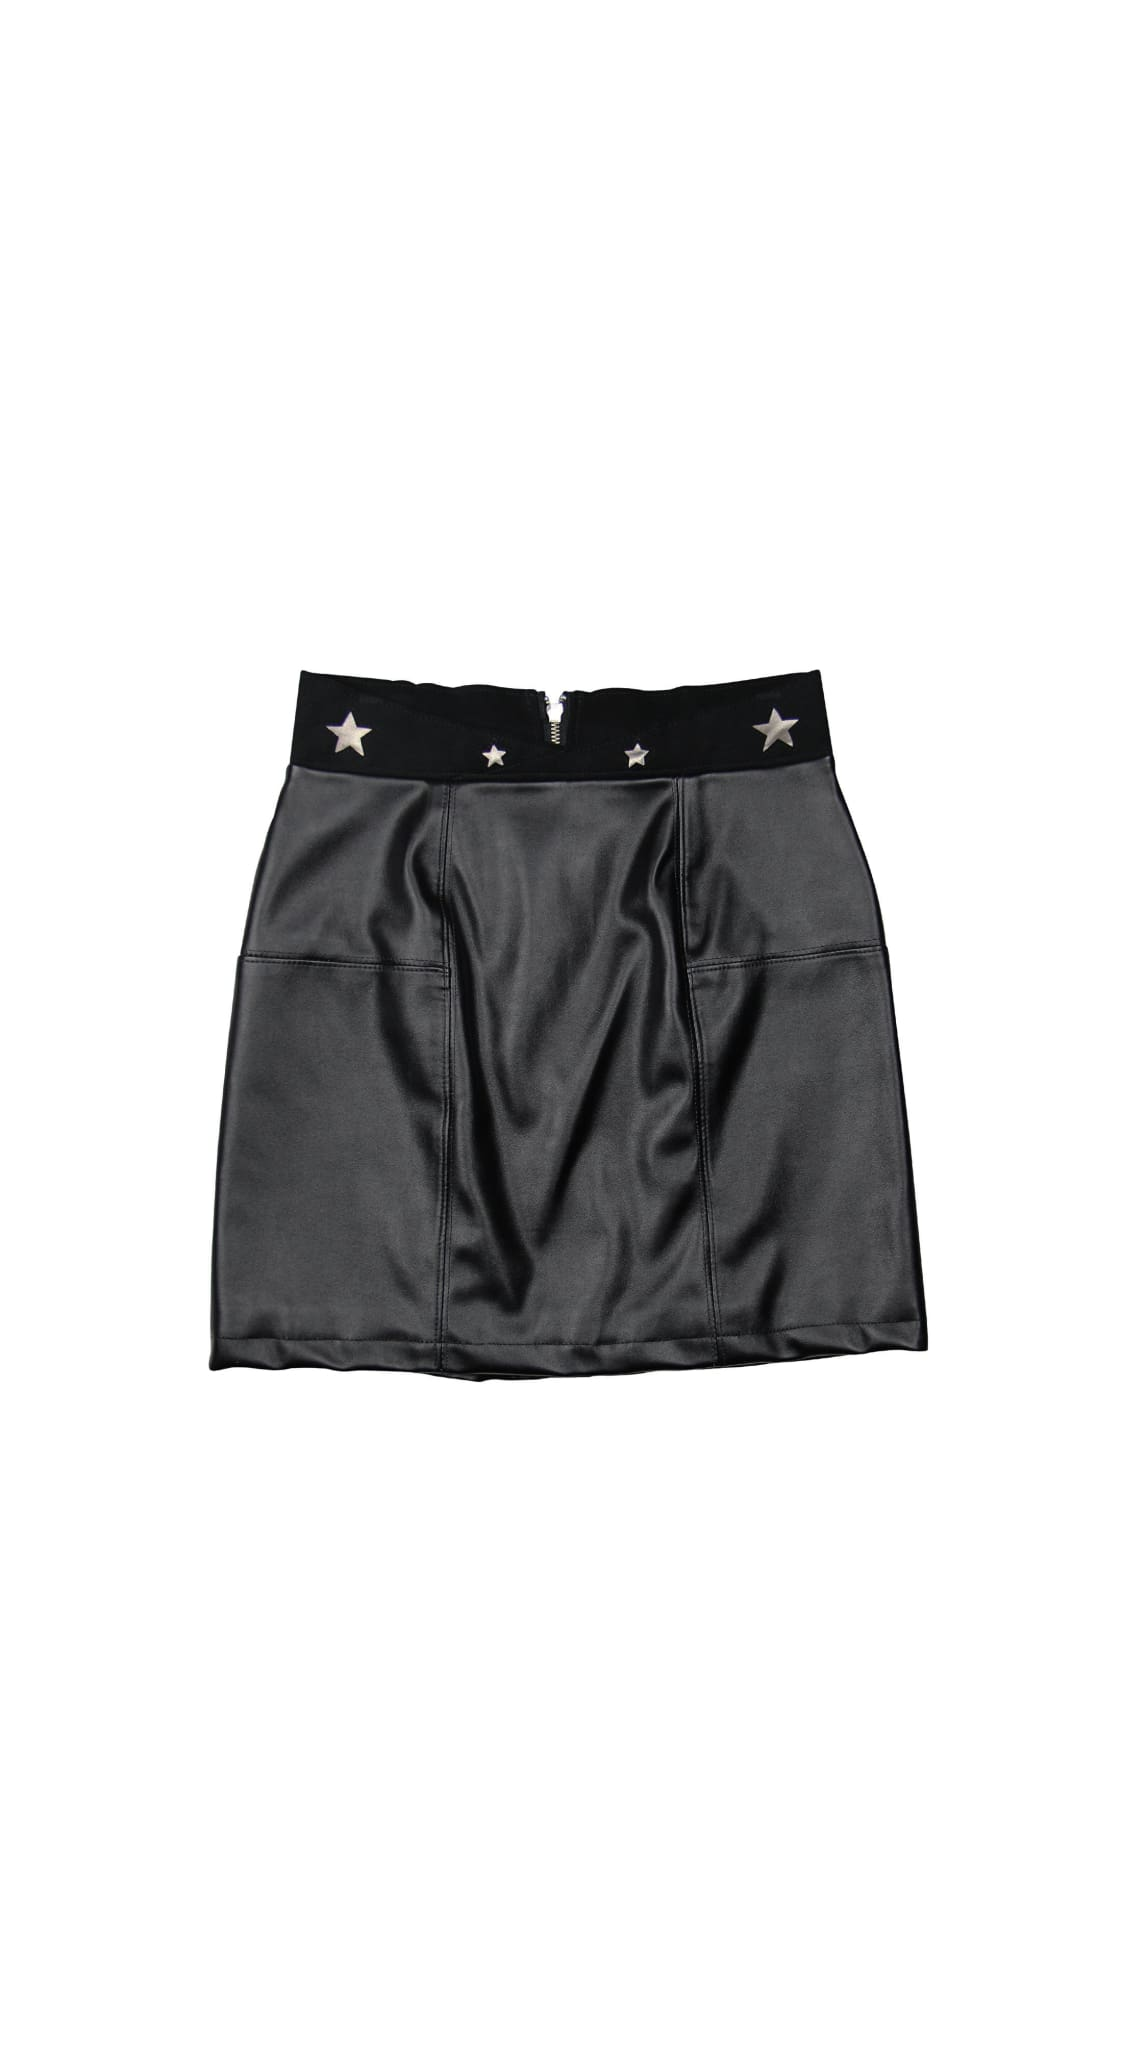 Black Vegan Leather StarMini Skirt by Meghan Hughes | Nineteenth Amendment